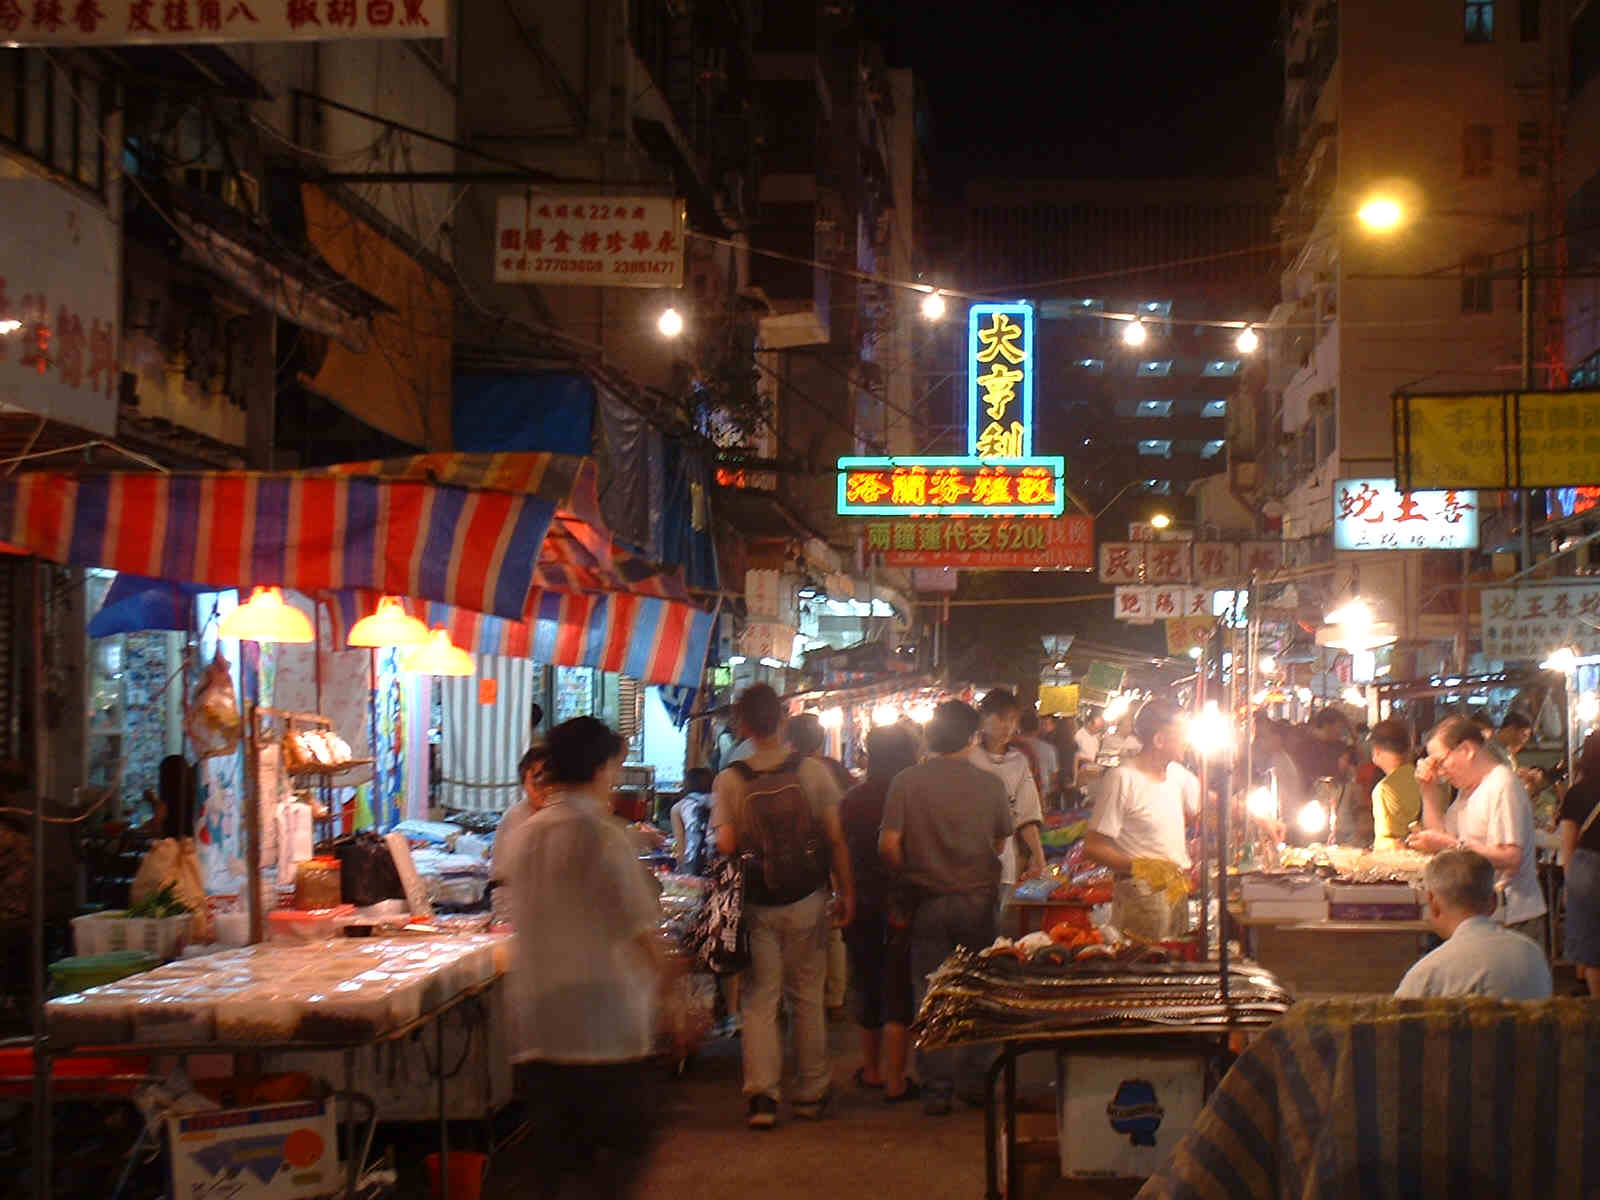 Nachtmarkt - Hongkong - China